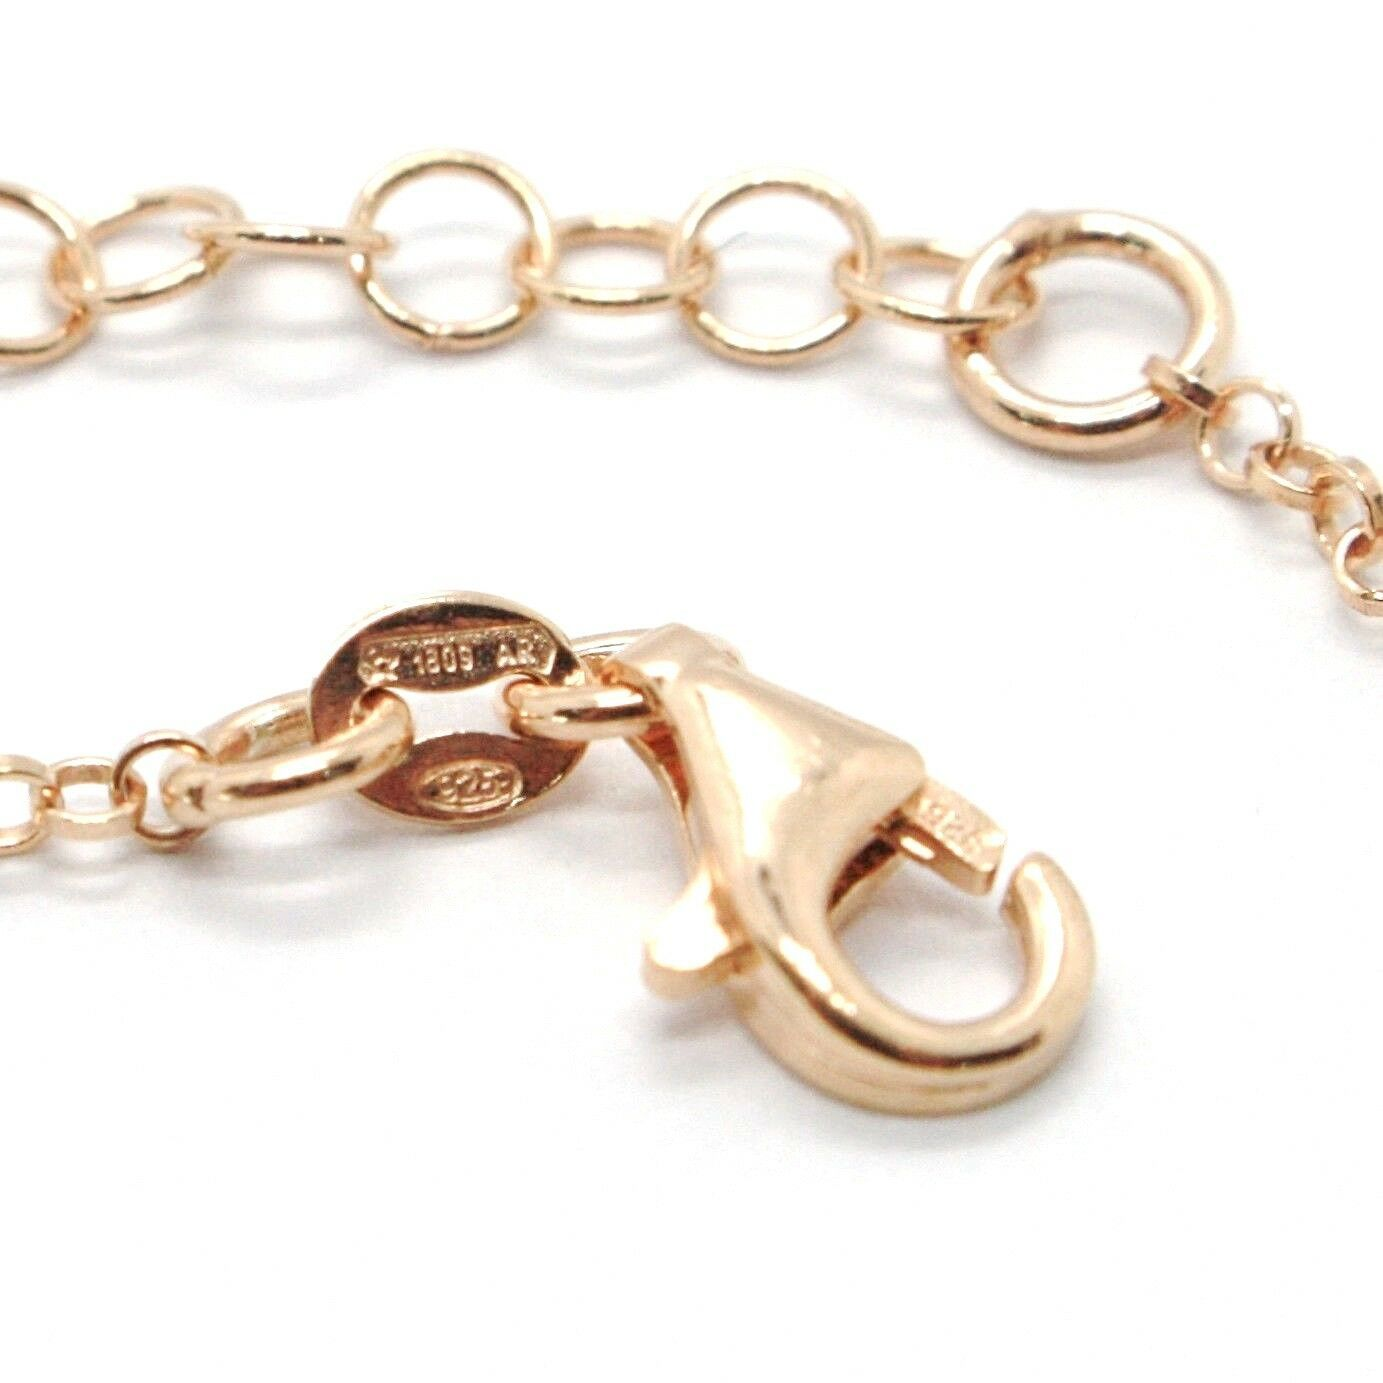 Silver Bracelet 925 Laminated in Rose Gold le Favole with Bow AG-901-BR-52